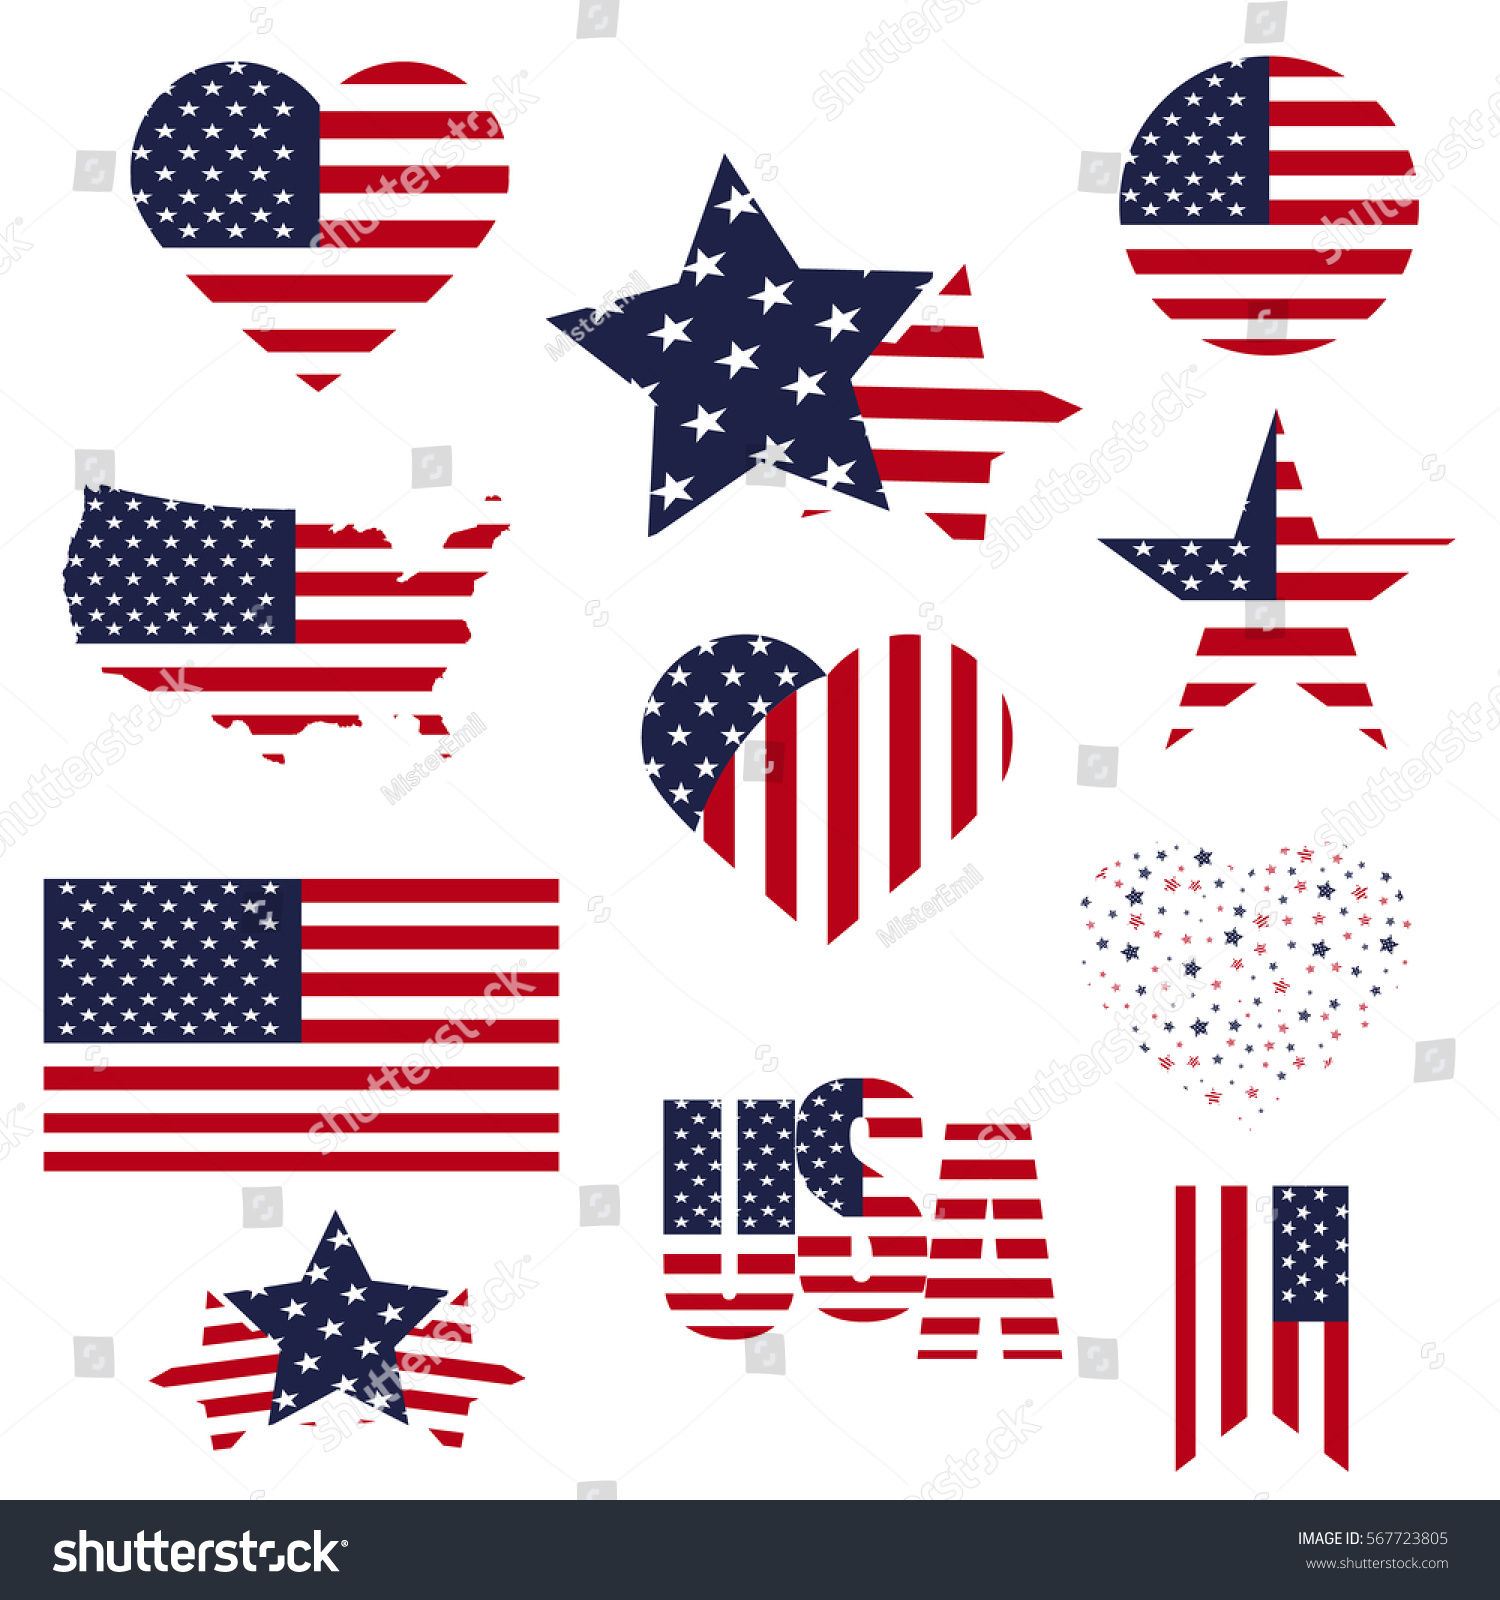 Symbols united states framed different forms stock vector symbols united states framed in different forms of the flag background biocorpaavc Images